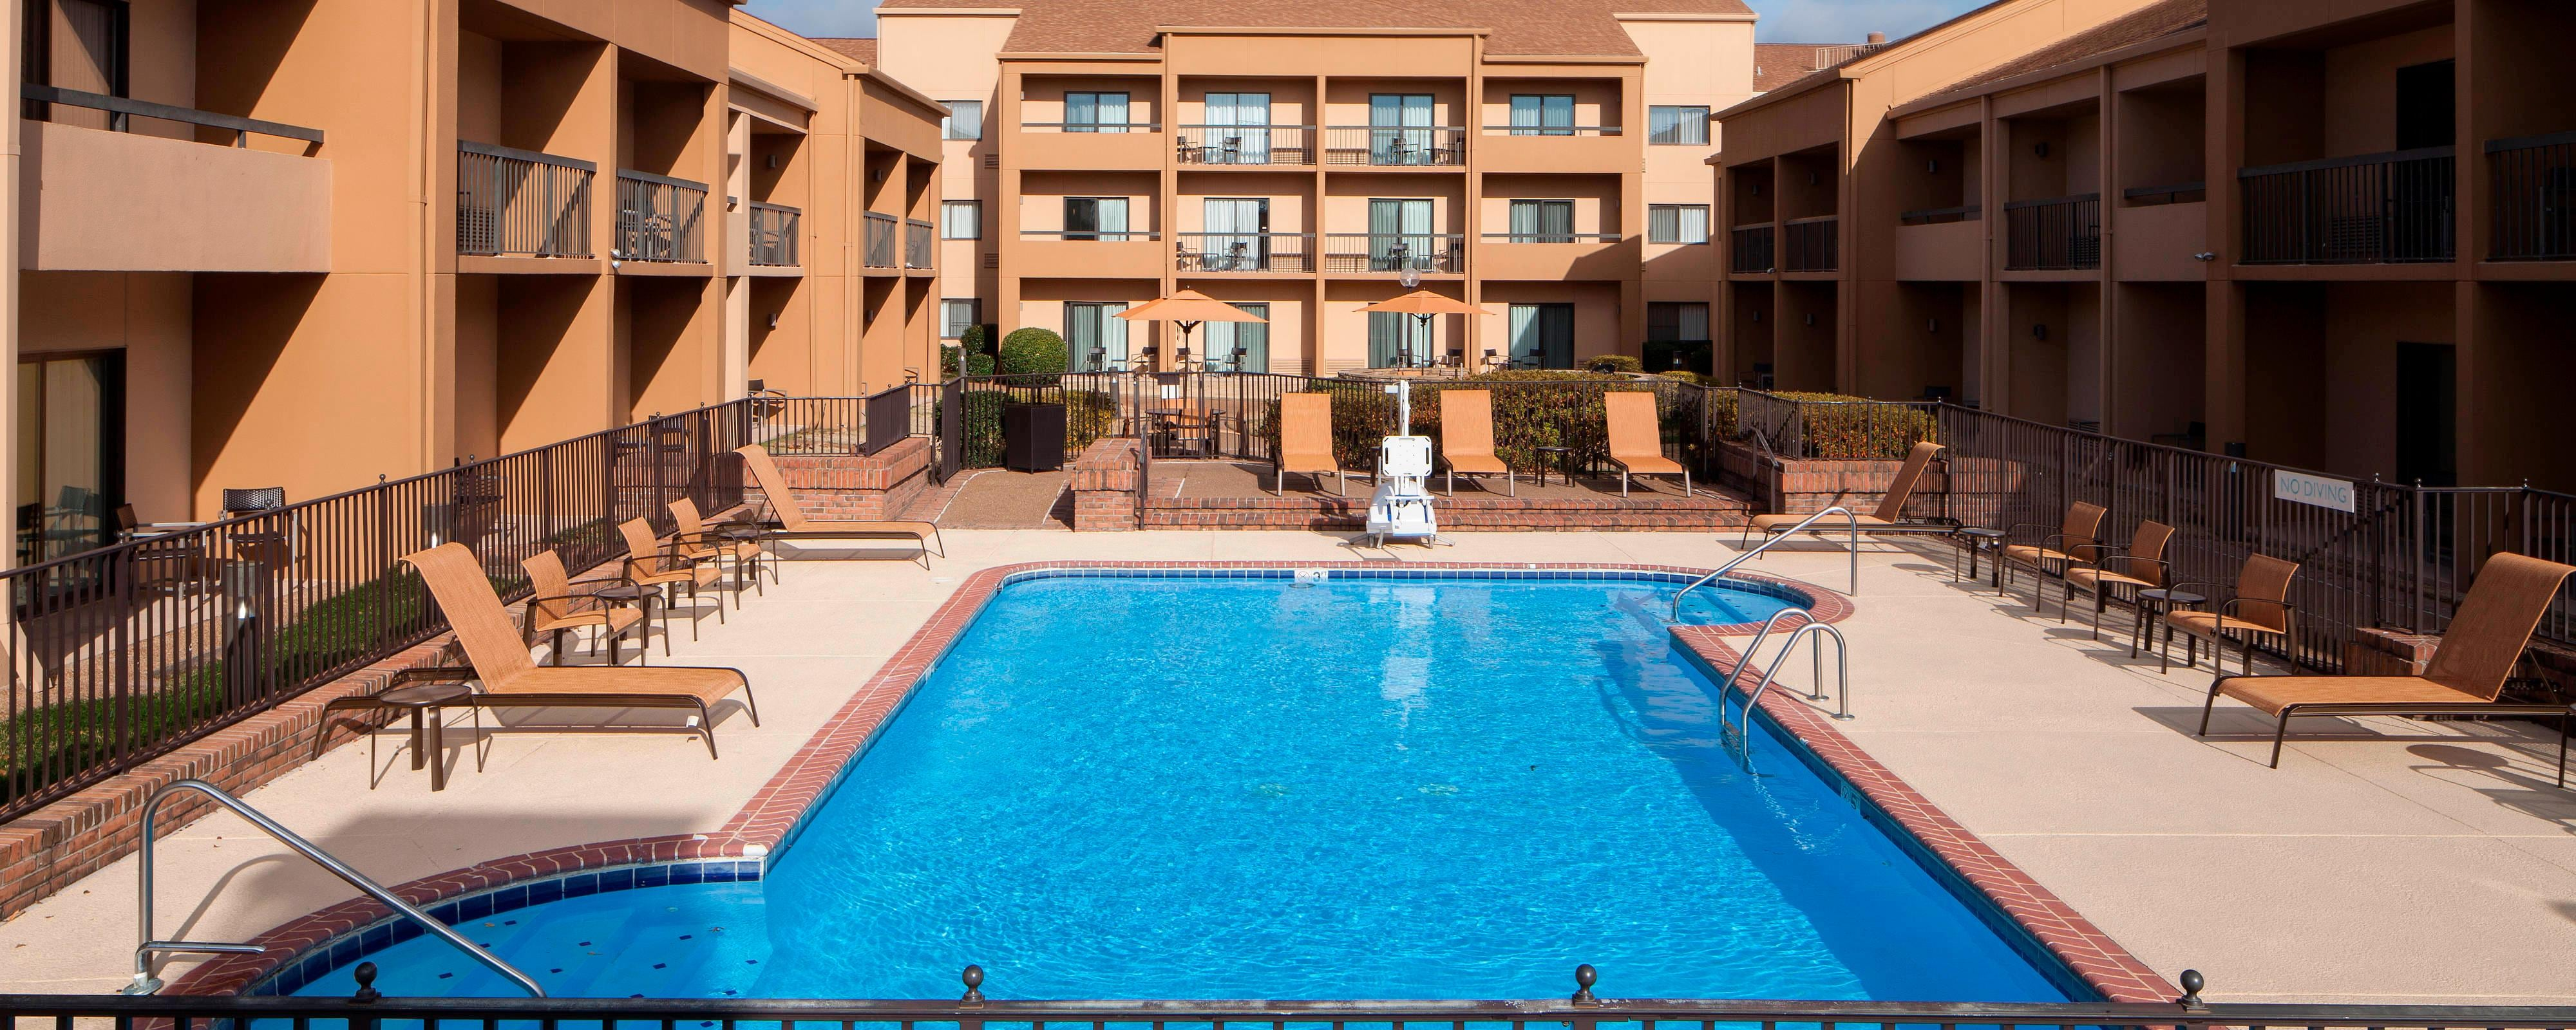 Memphis Airport Hotel with Pool and Gym | Courtyard Memphis ...